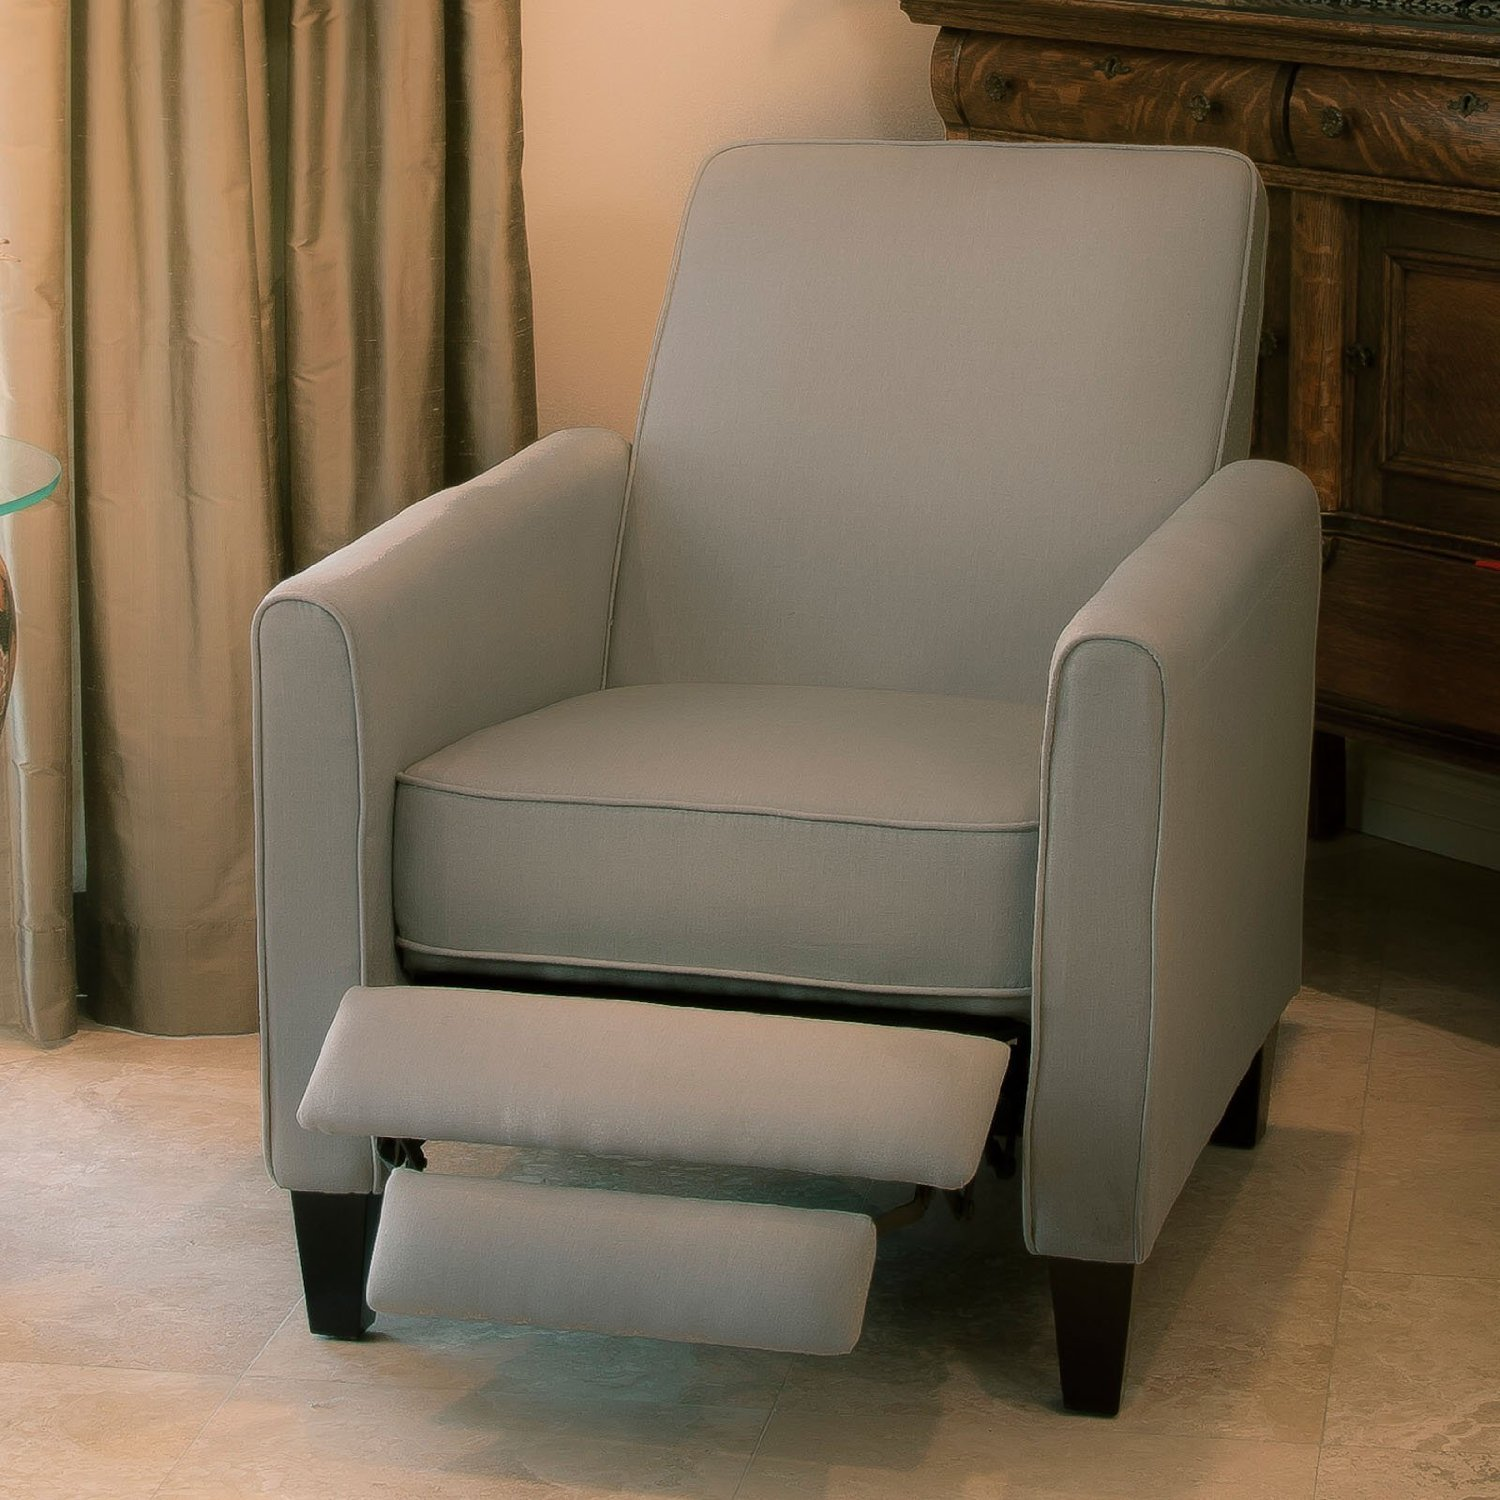 Best Reading Chair For Bad Back Davis Fabric Recliner Club Chair On Sale 145 Reg 390